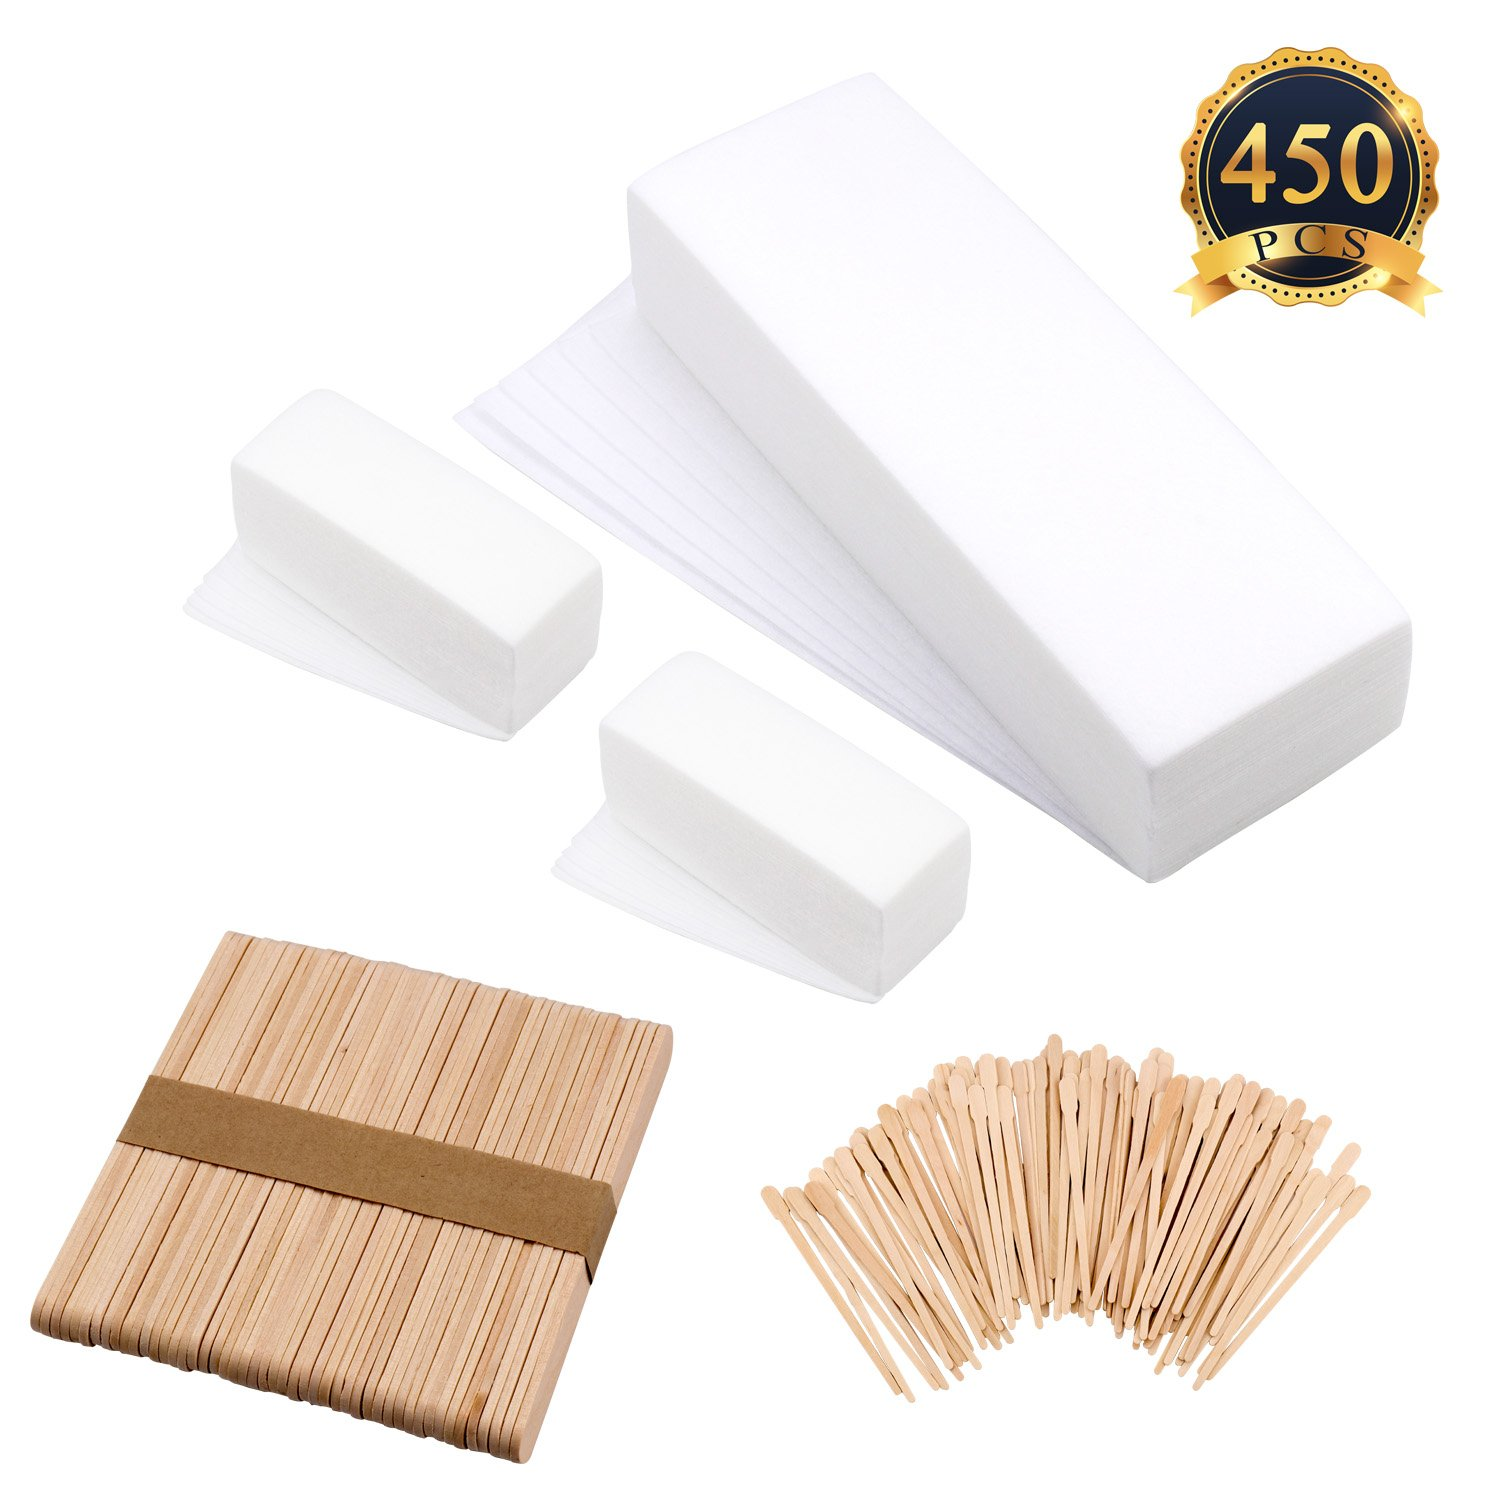 SUBANG 300 Pieces Waxing Strip Non-woven Wax Strip Hair Removal Wax Strips and 150 Pieces Wax Applicator Sticks